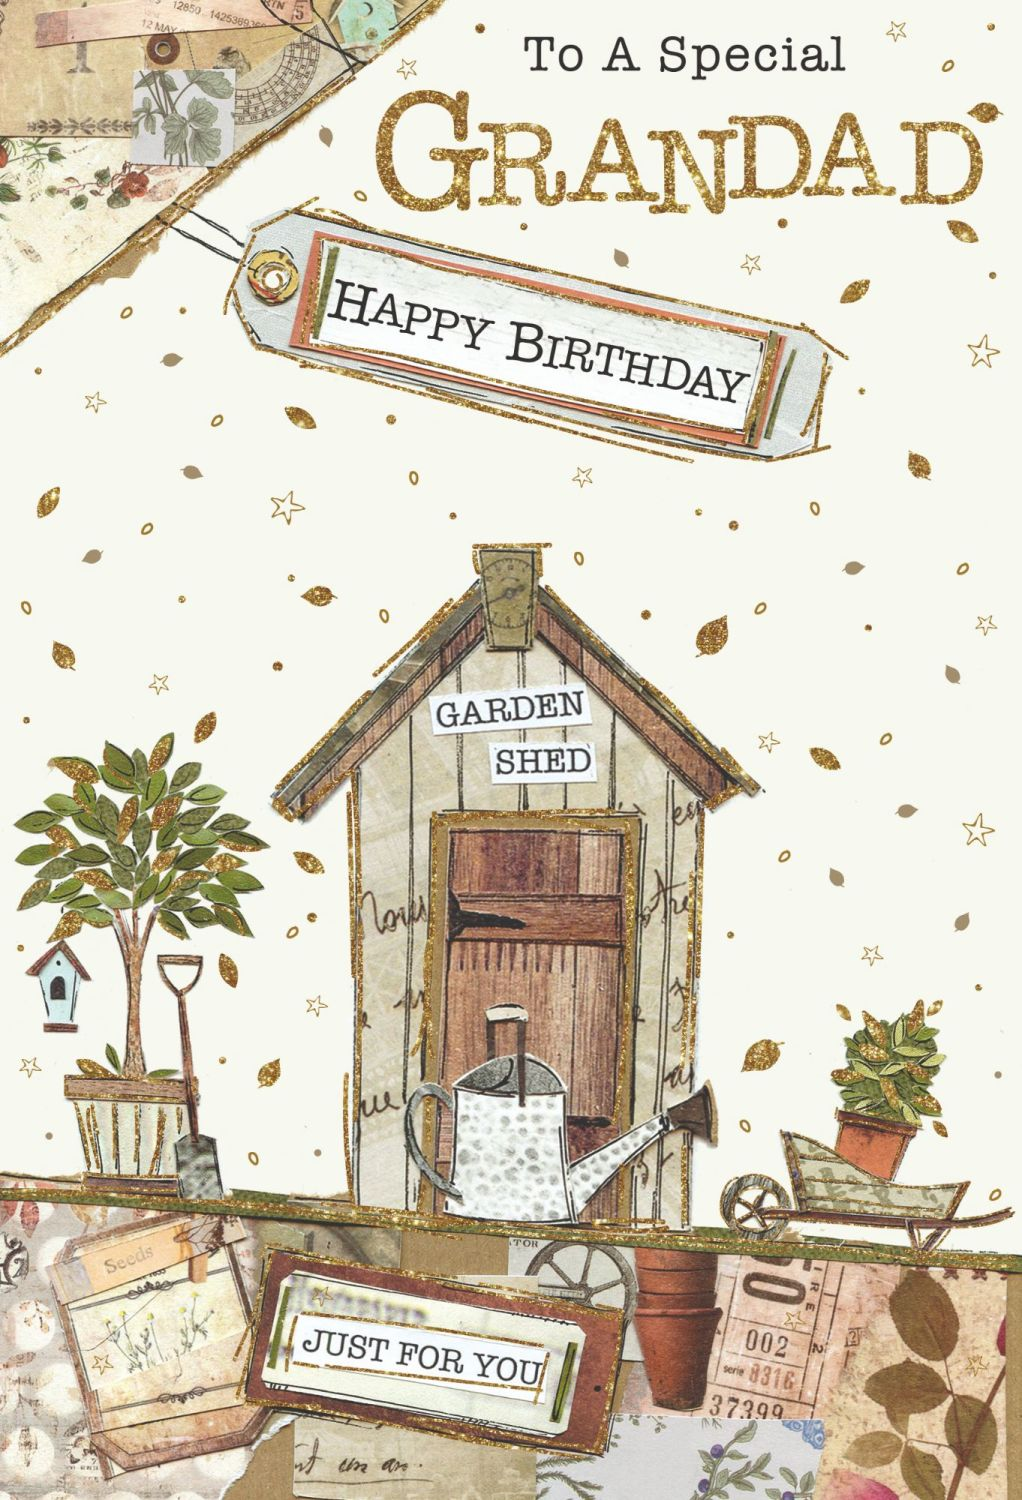 To A Special Grandad Birthday Card - JUST FOR YOU - Gardening BIRTHDAY Card